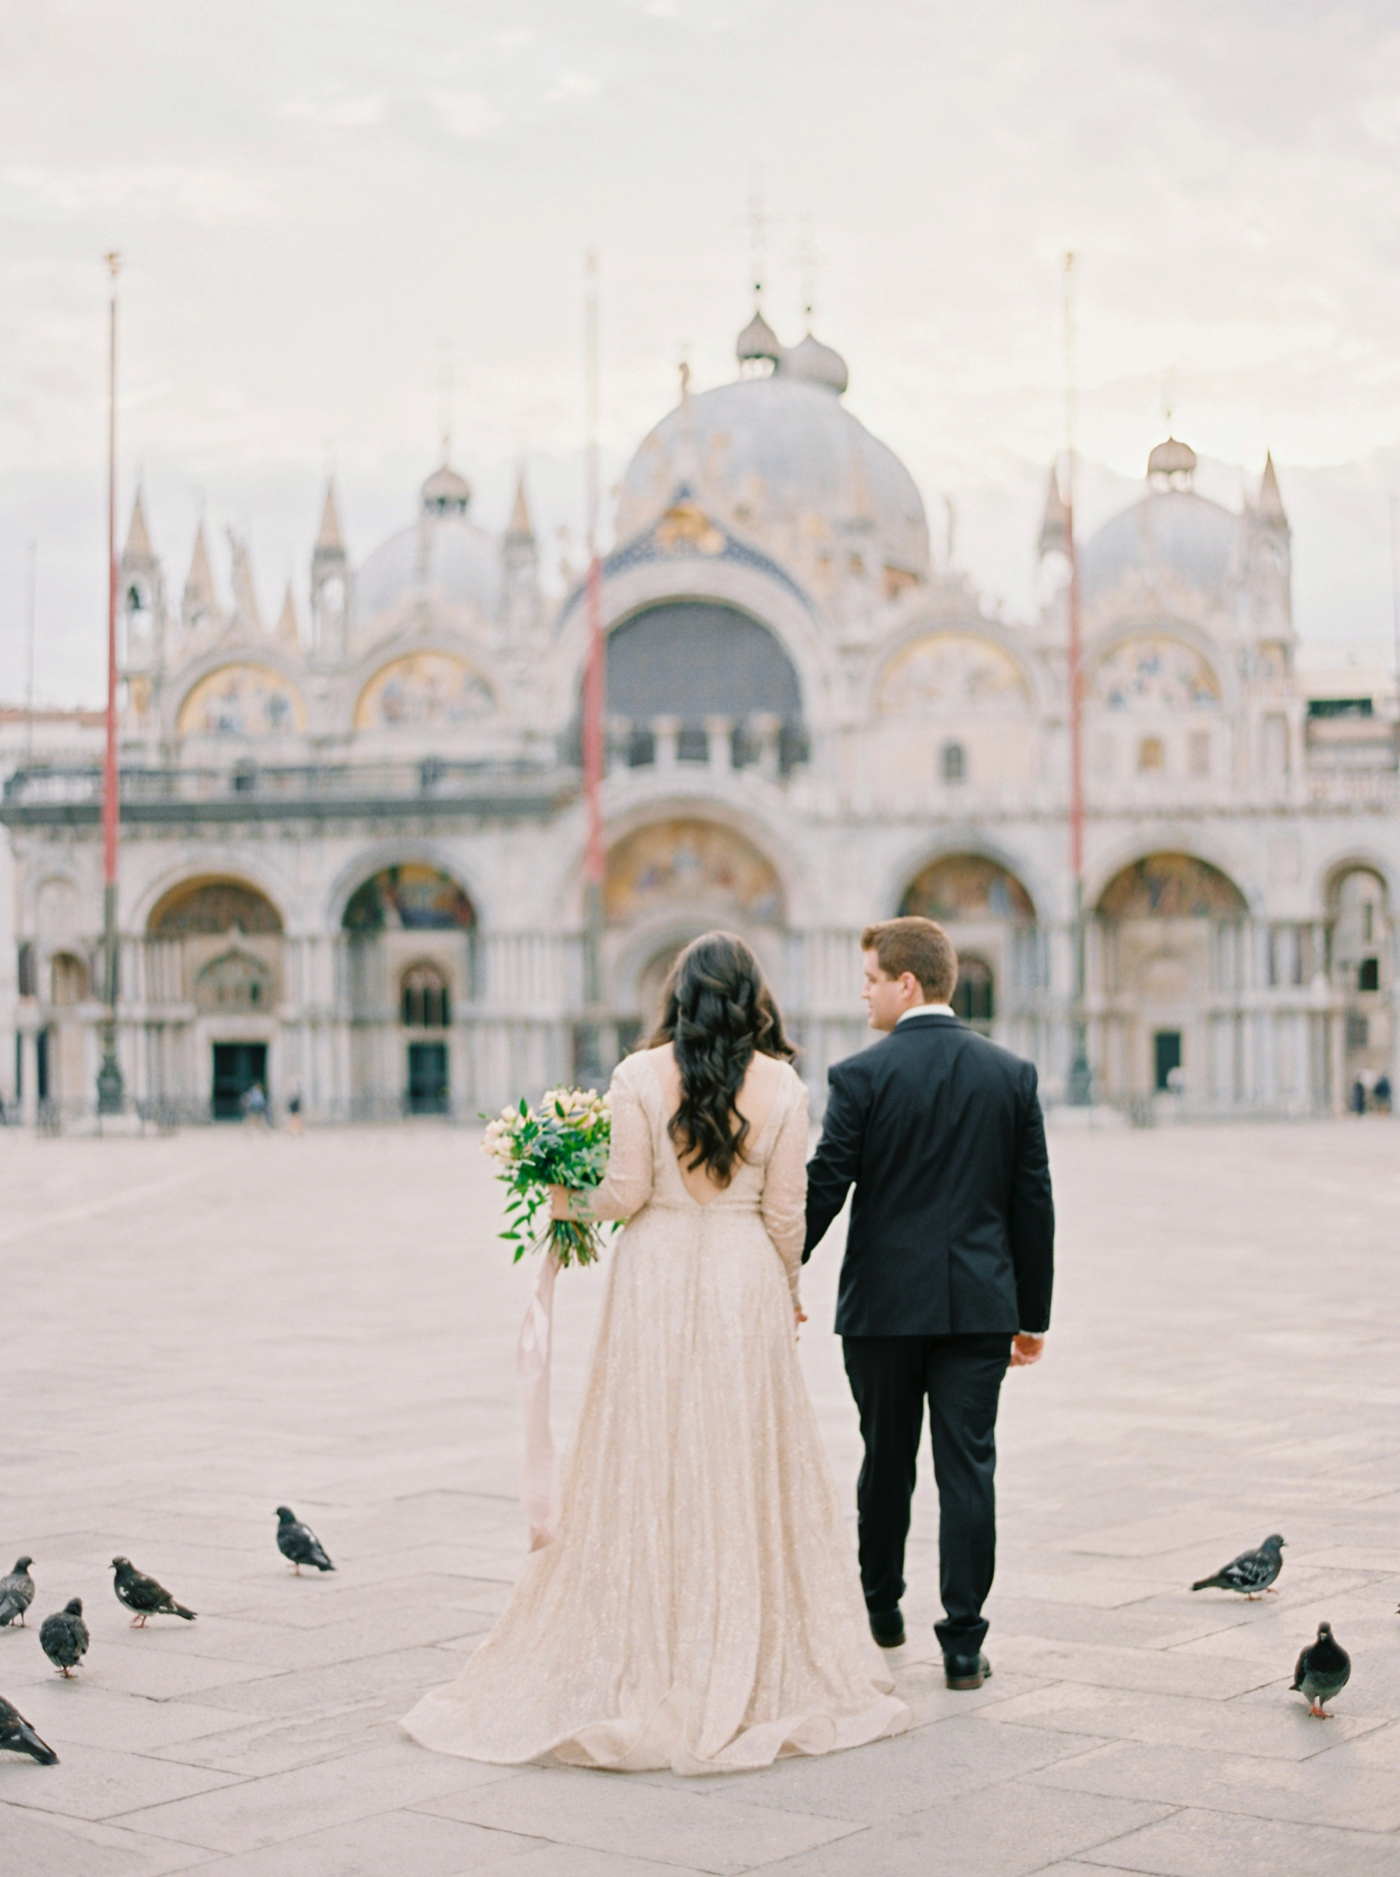 Venice italy wedding photographers | long sleeve wedding dress | italy vow renewal | justine milton fine art film photographer | bride and groom portraits San Marco Square